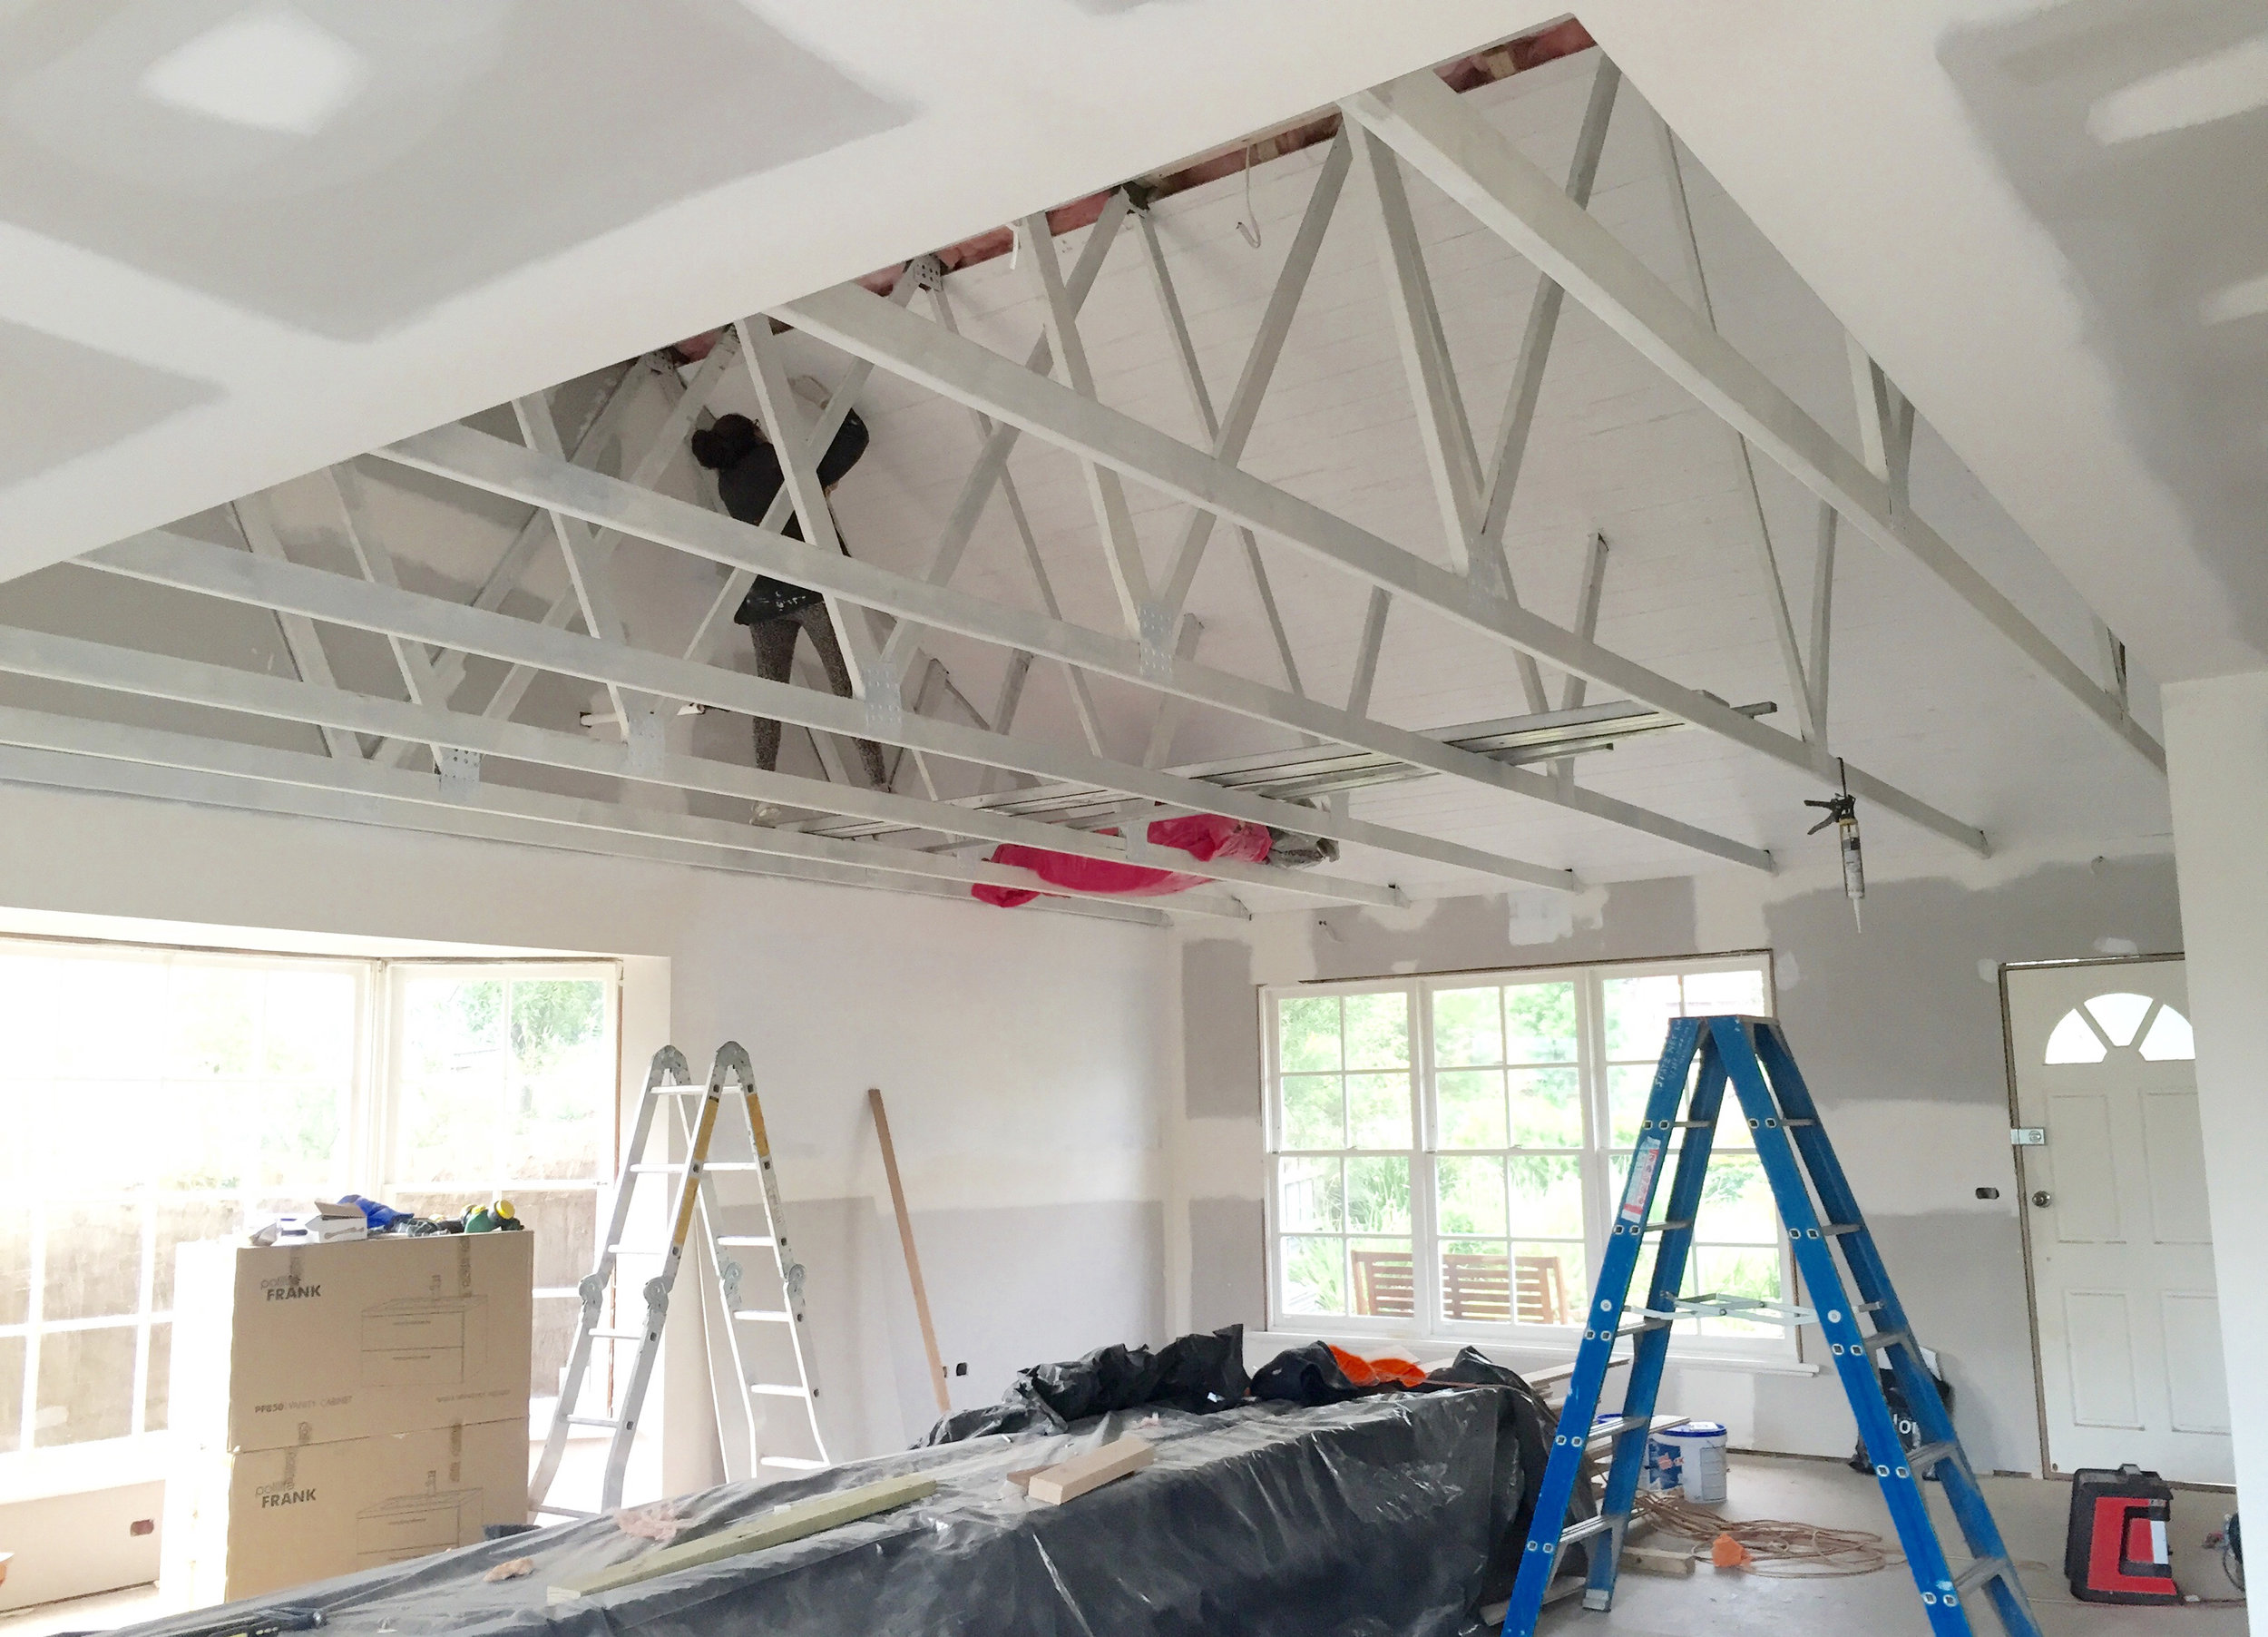 Painting exposed beams and pitched ceiling - The Organised You